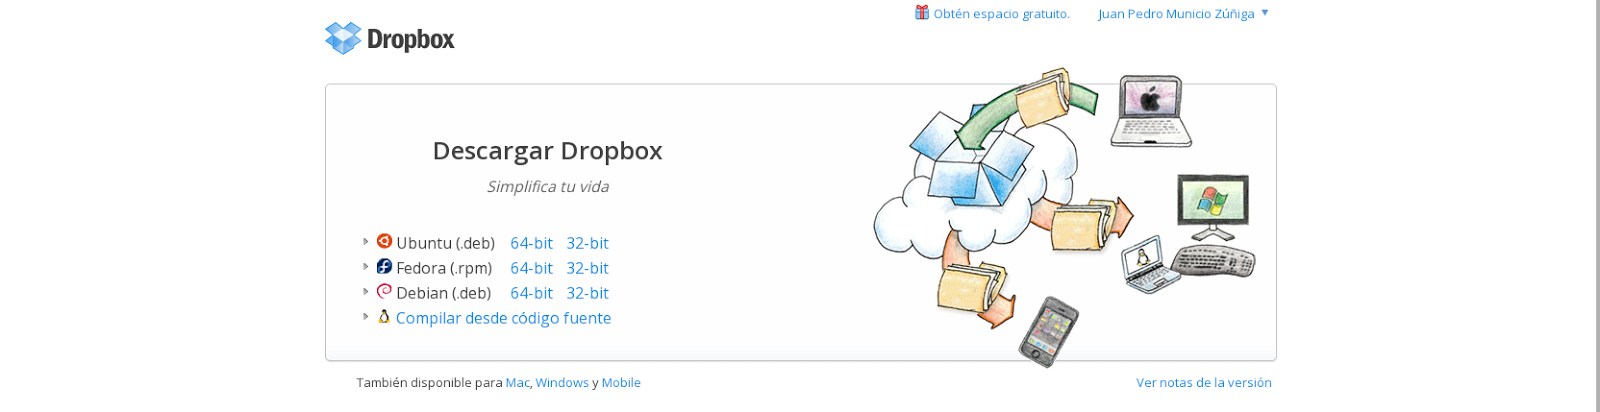 Descargar dropbox español gratis windows 7